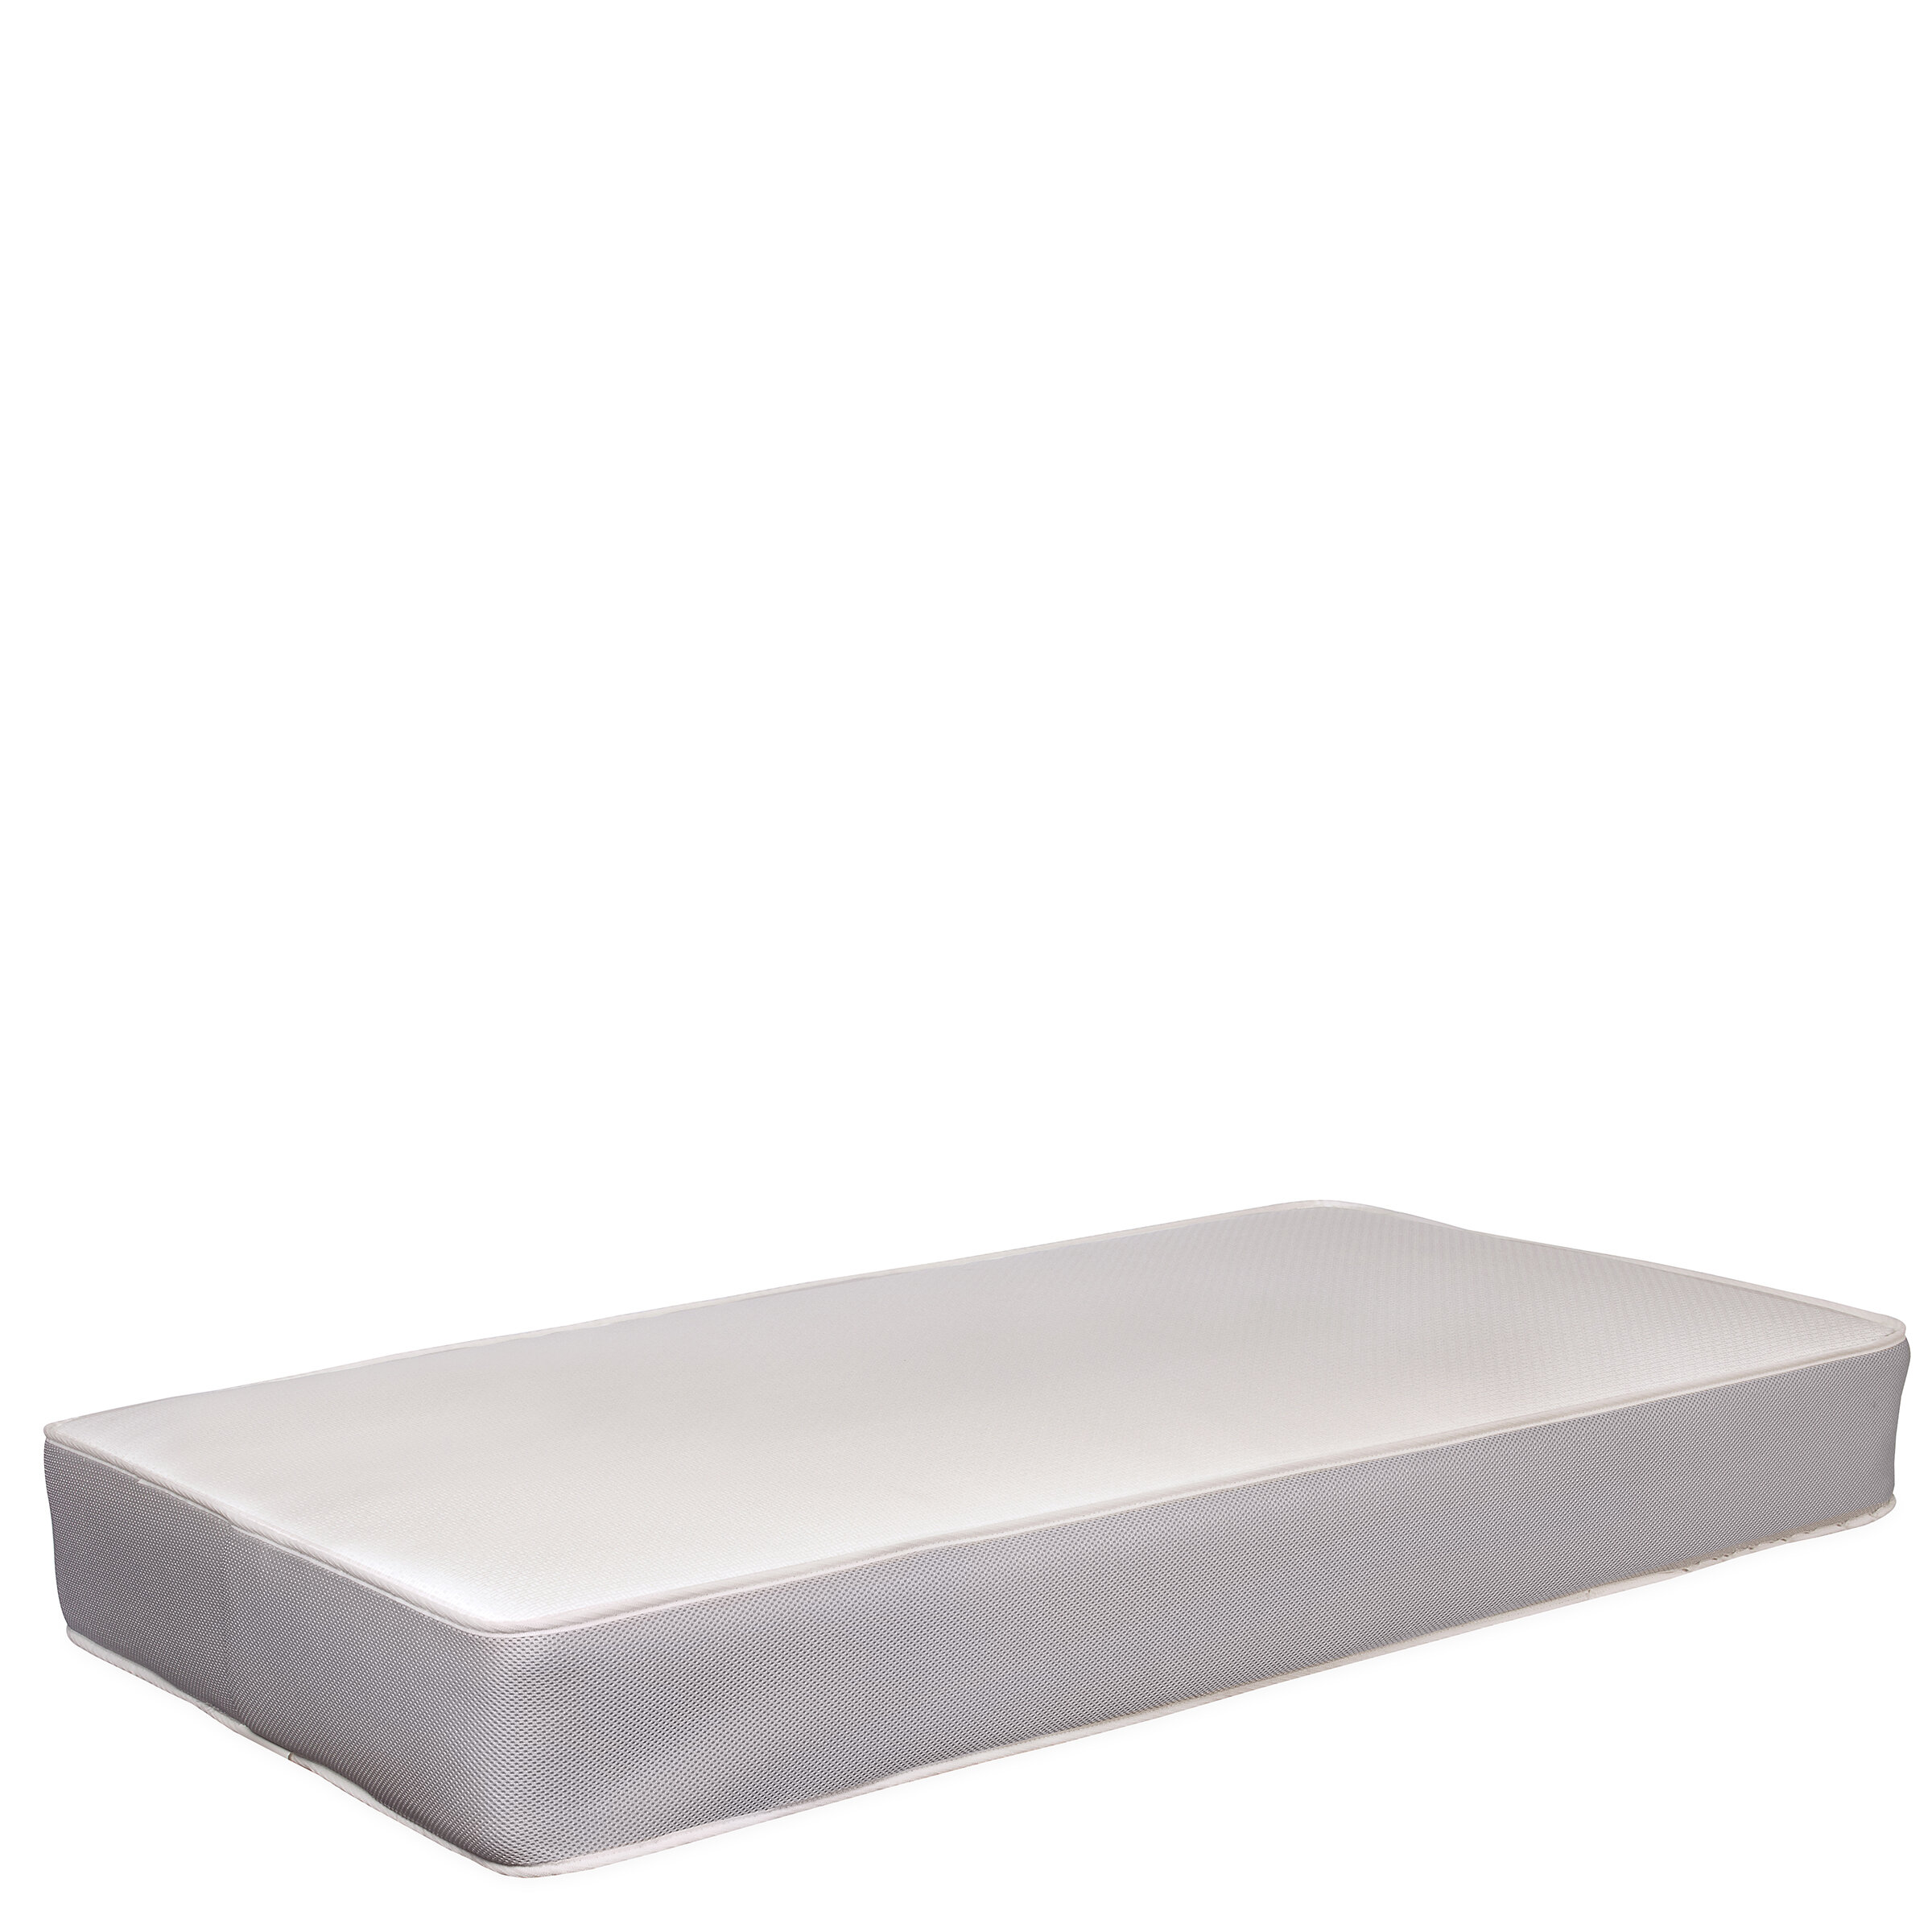 Jupiter Simmons Thermo Comfort Crib Mattress with Thermo Cool Mattress Protector Included